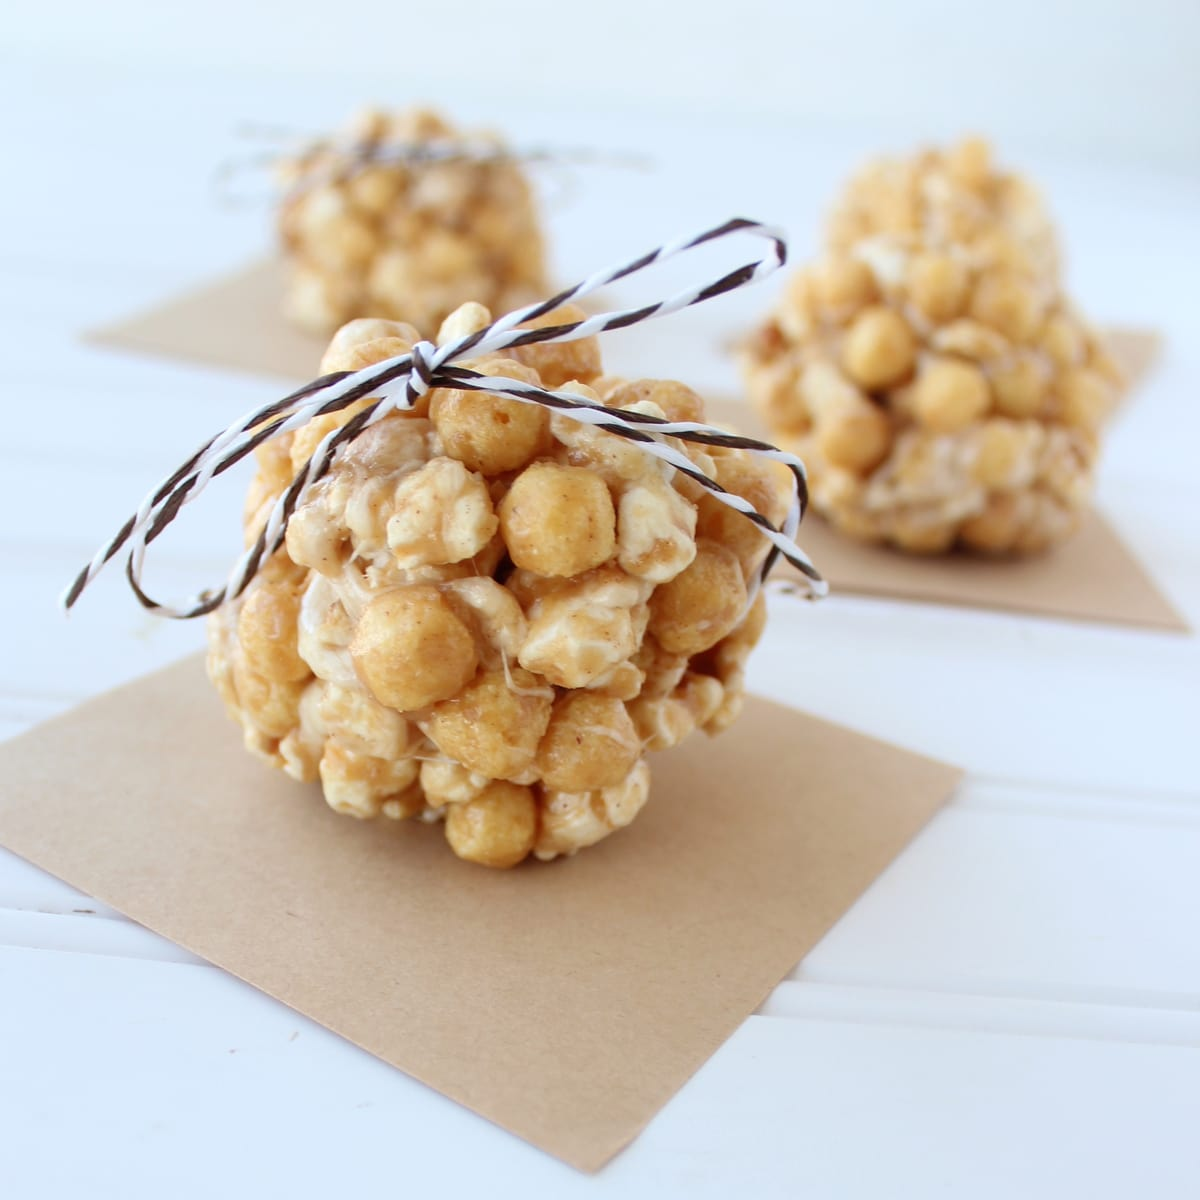 10 Popcorn Balls Recipe Ideas For An Ultimate Snack Time Peanut Butter Popcorn Balls